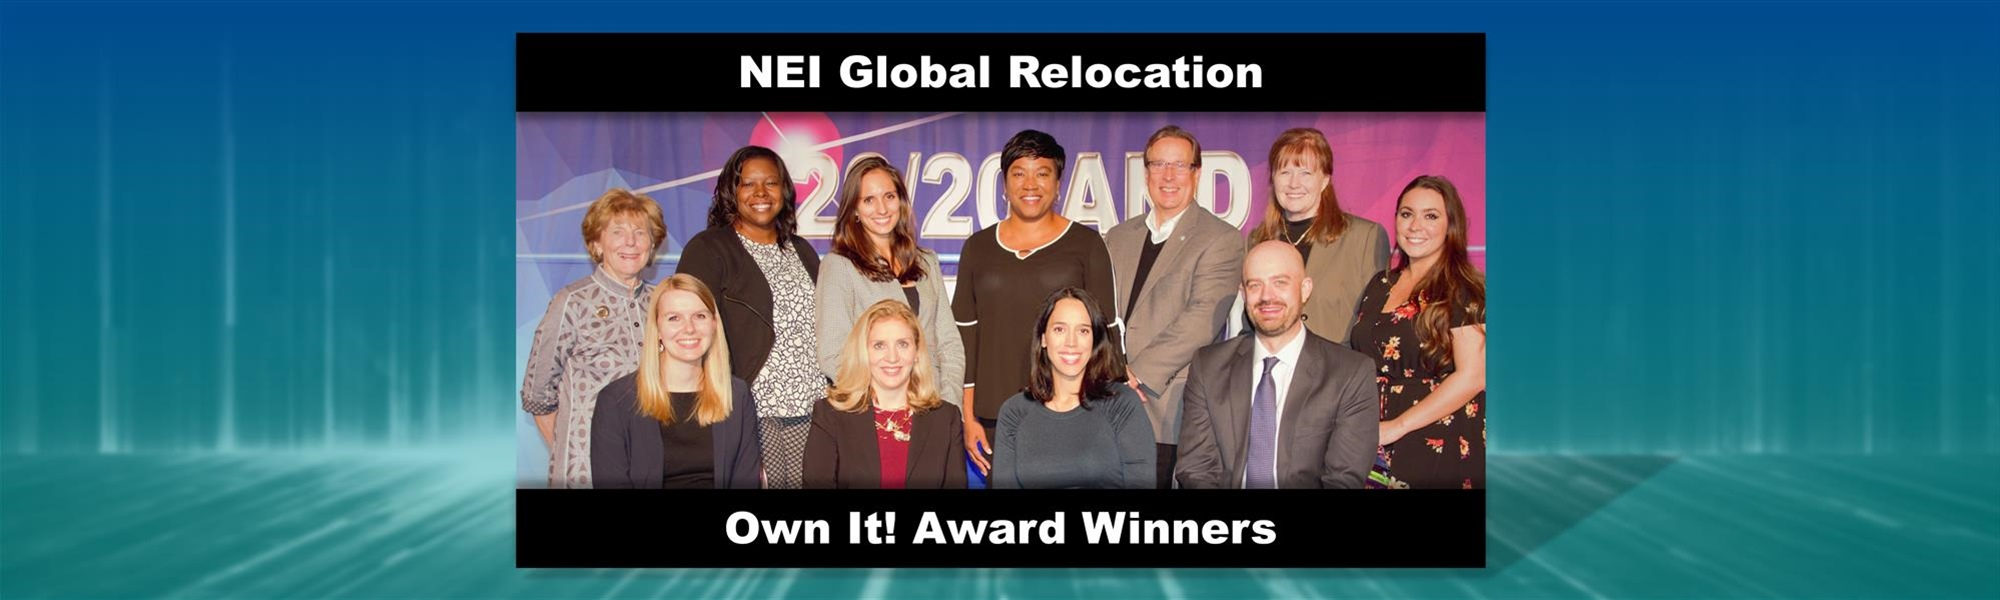 NEI Global Relocation Recognizes Nine Service Partners for Own It! Awards